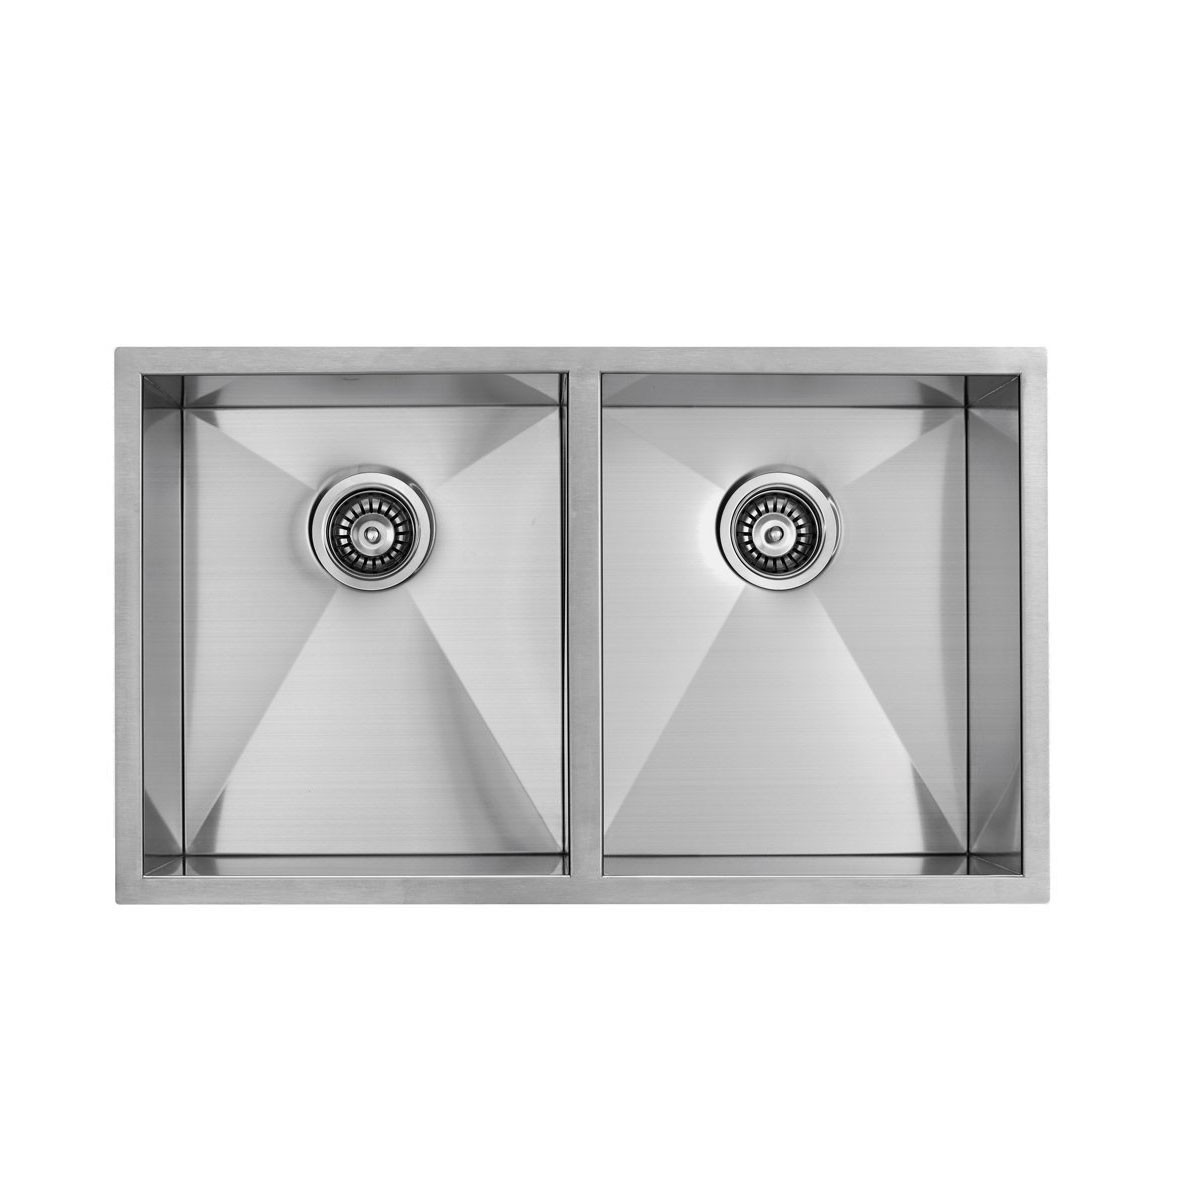 33 x 22 In. Stainless Steel Double Bowl Kitchen Sink (D3322-R0 ...